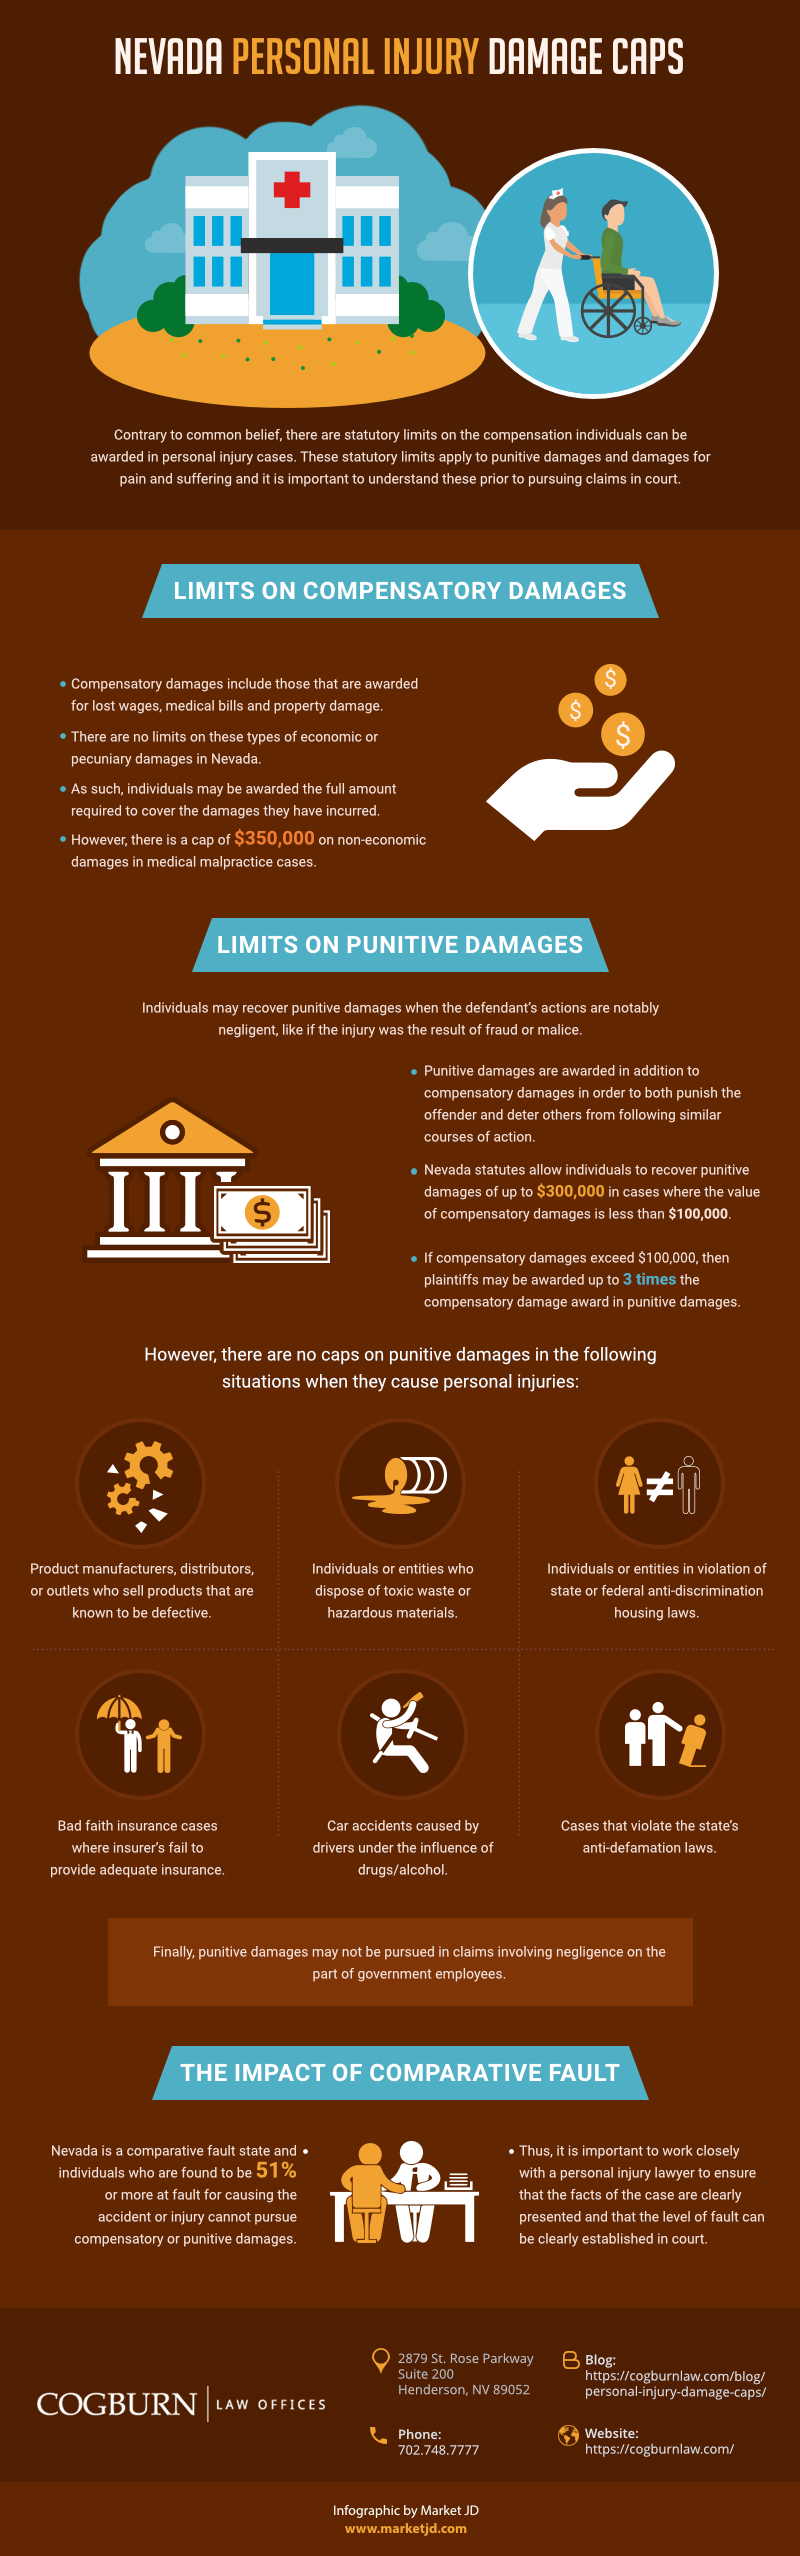 Nevada Personal Injury Damage Caps infographic_personal injury lawyer